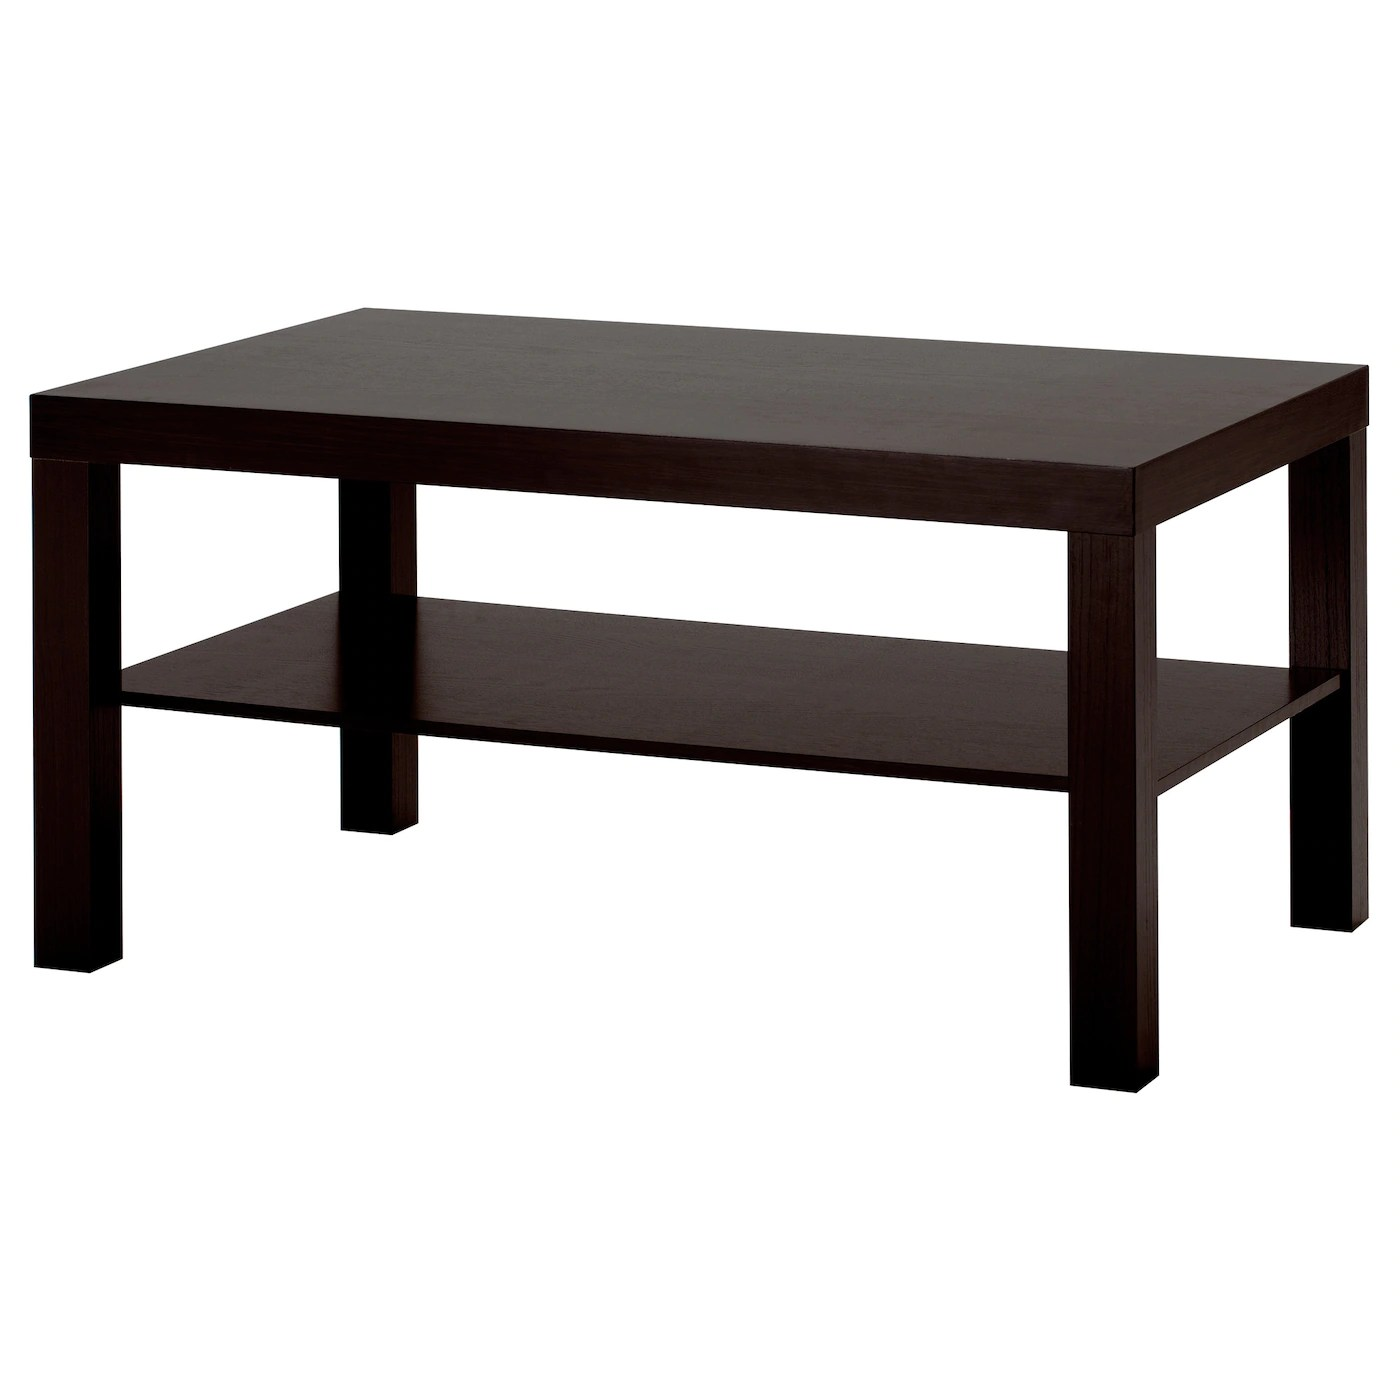 Ikea Table Basse Noir Lack Table Basse Brun Noir